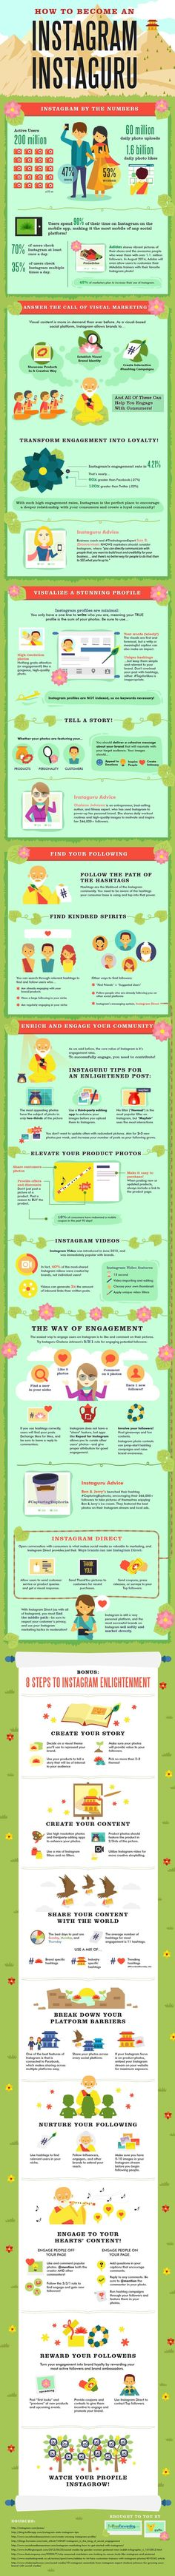 Social Media Marketing On Instagram: Become An Instaguru — #infographic  To show you how to find your Instagram following and how to enrich and engage your community, the folks at tollfreeforwarding have created a nifty infographic that breaks down the steps you need to take to achieve these goals.